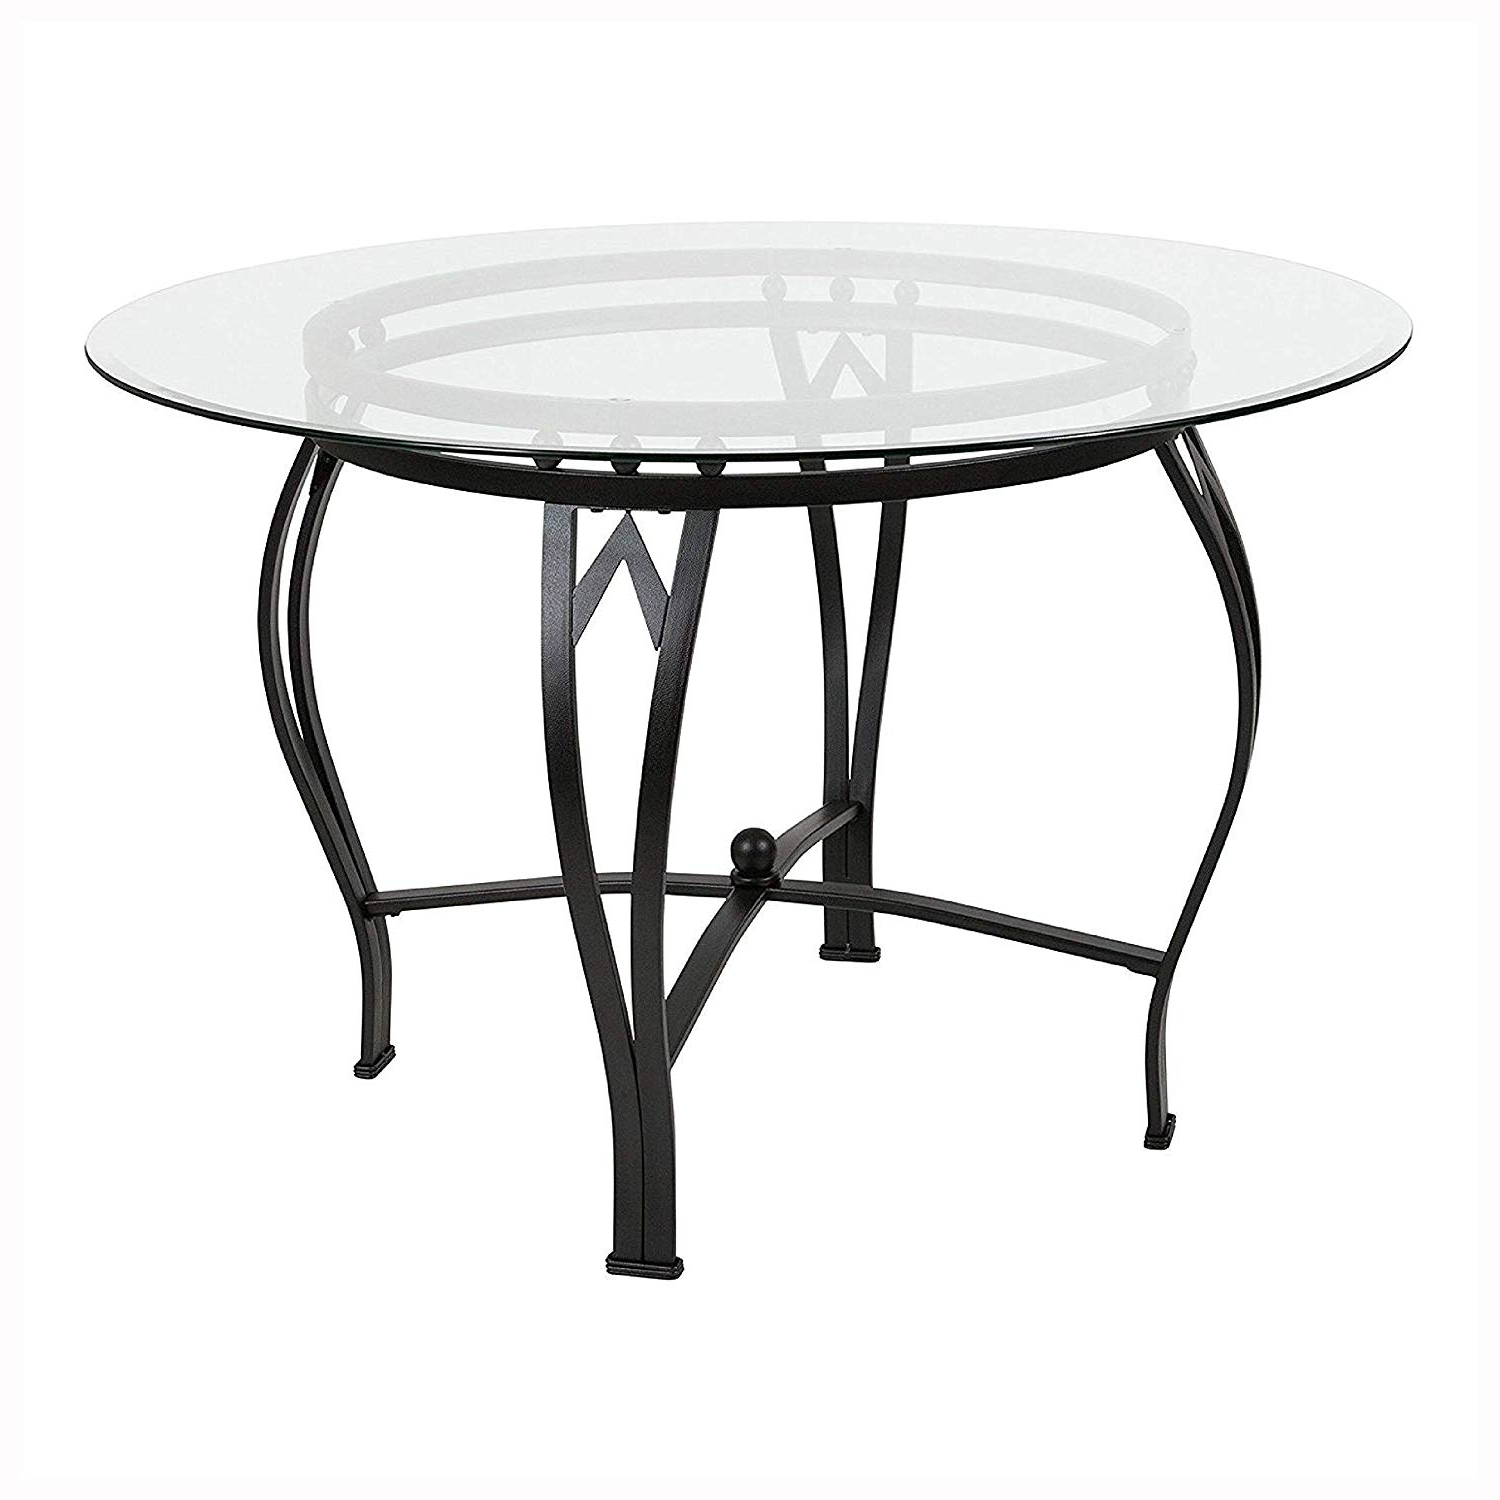 Round Glass Top Dining Tables Inside Preferred Amazon – Dining Tables, Modern 45 Inch Round Glass Top (View 7 of 30)